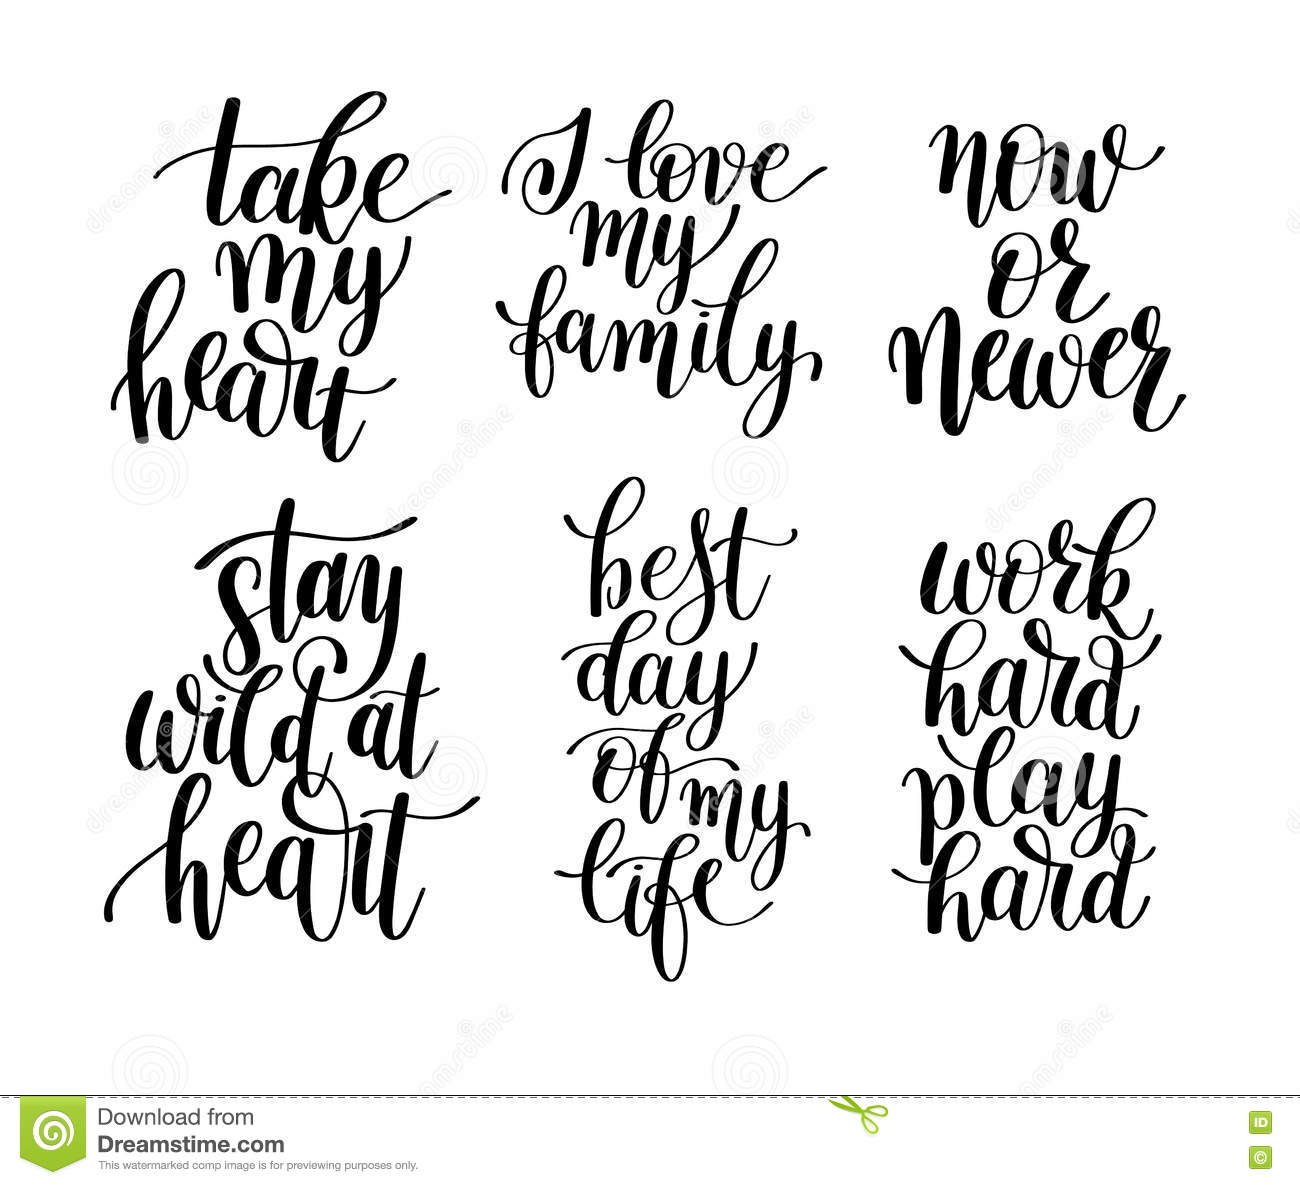 Positive Quotations About Life Set Of 6 Handwritten Lettering Positive Quotes About Life Stock